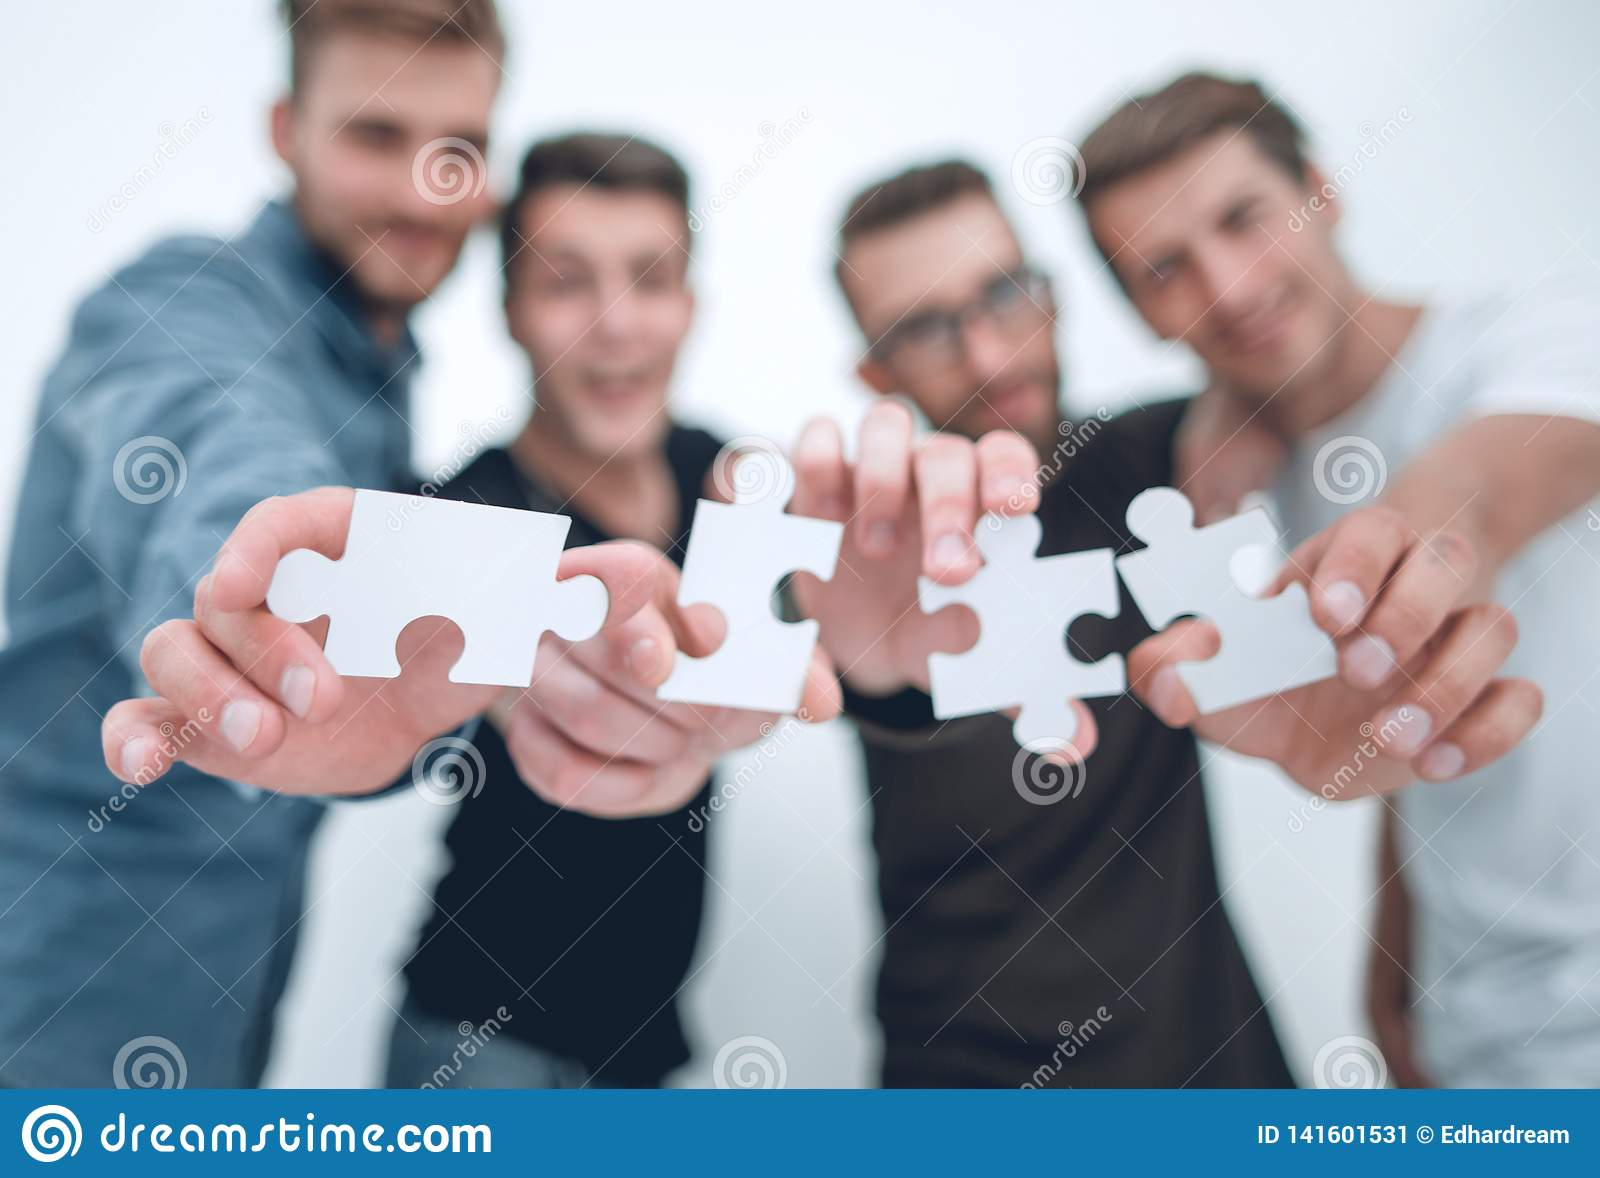 Group of young people with puzzle pieces